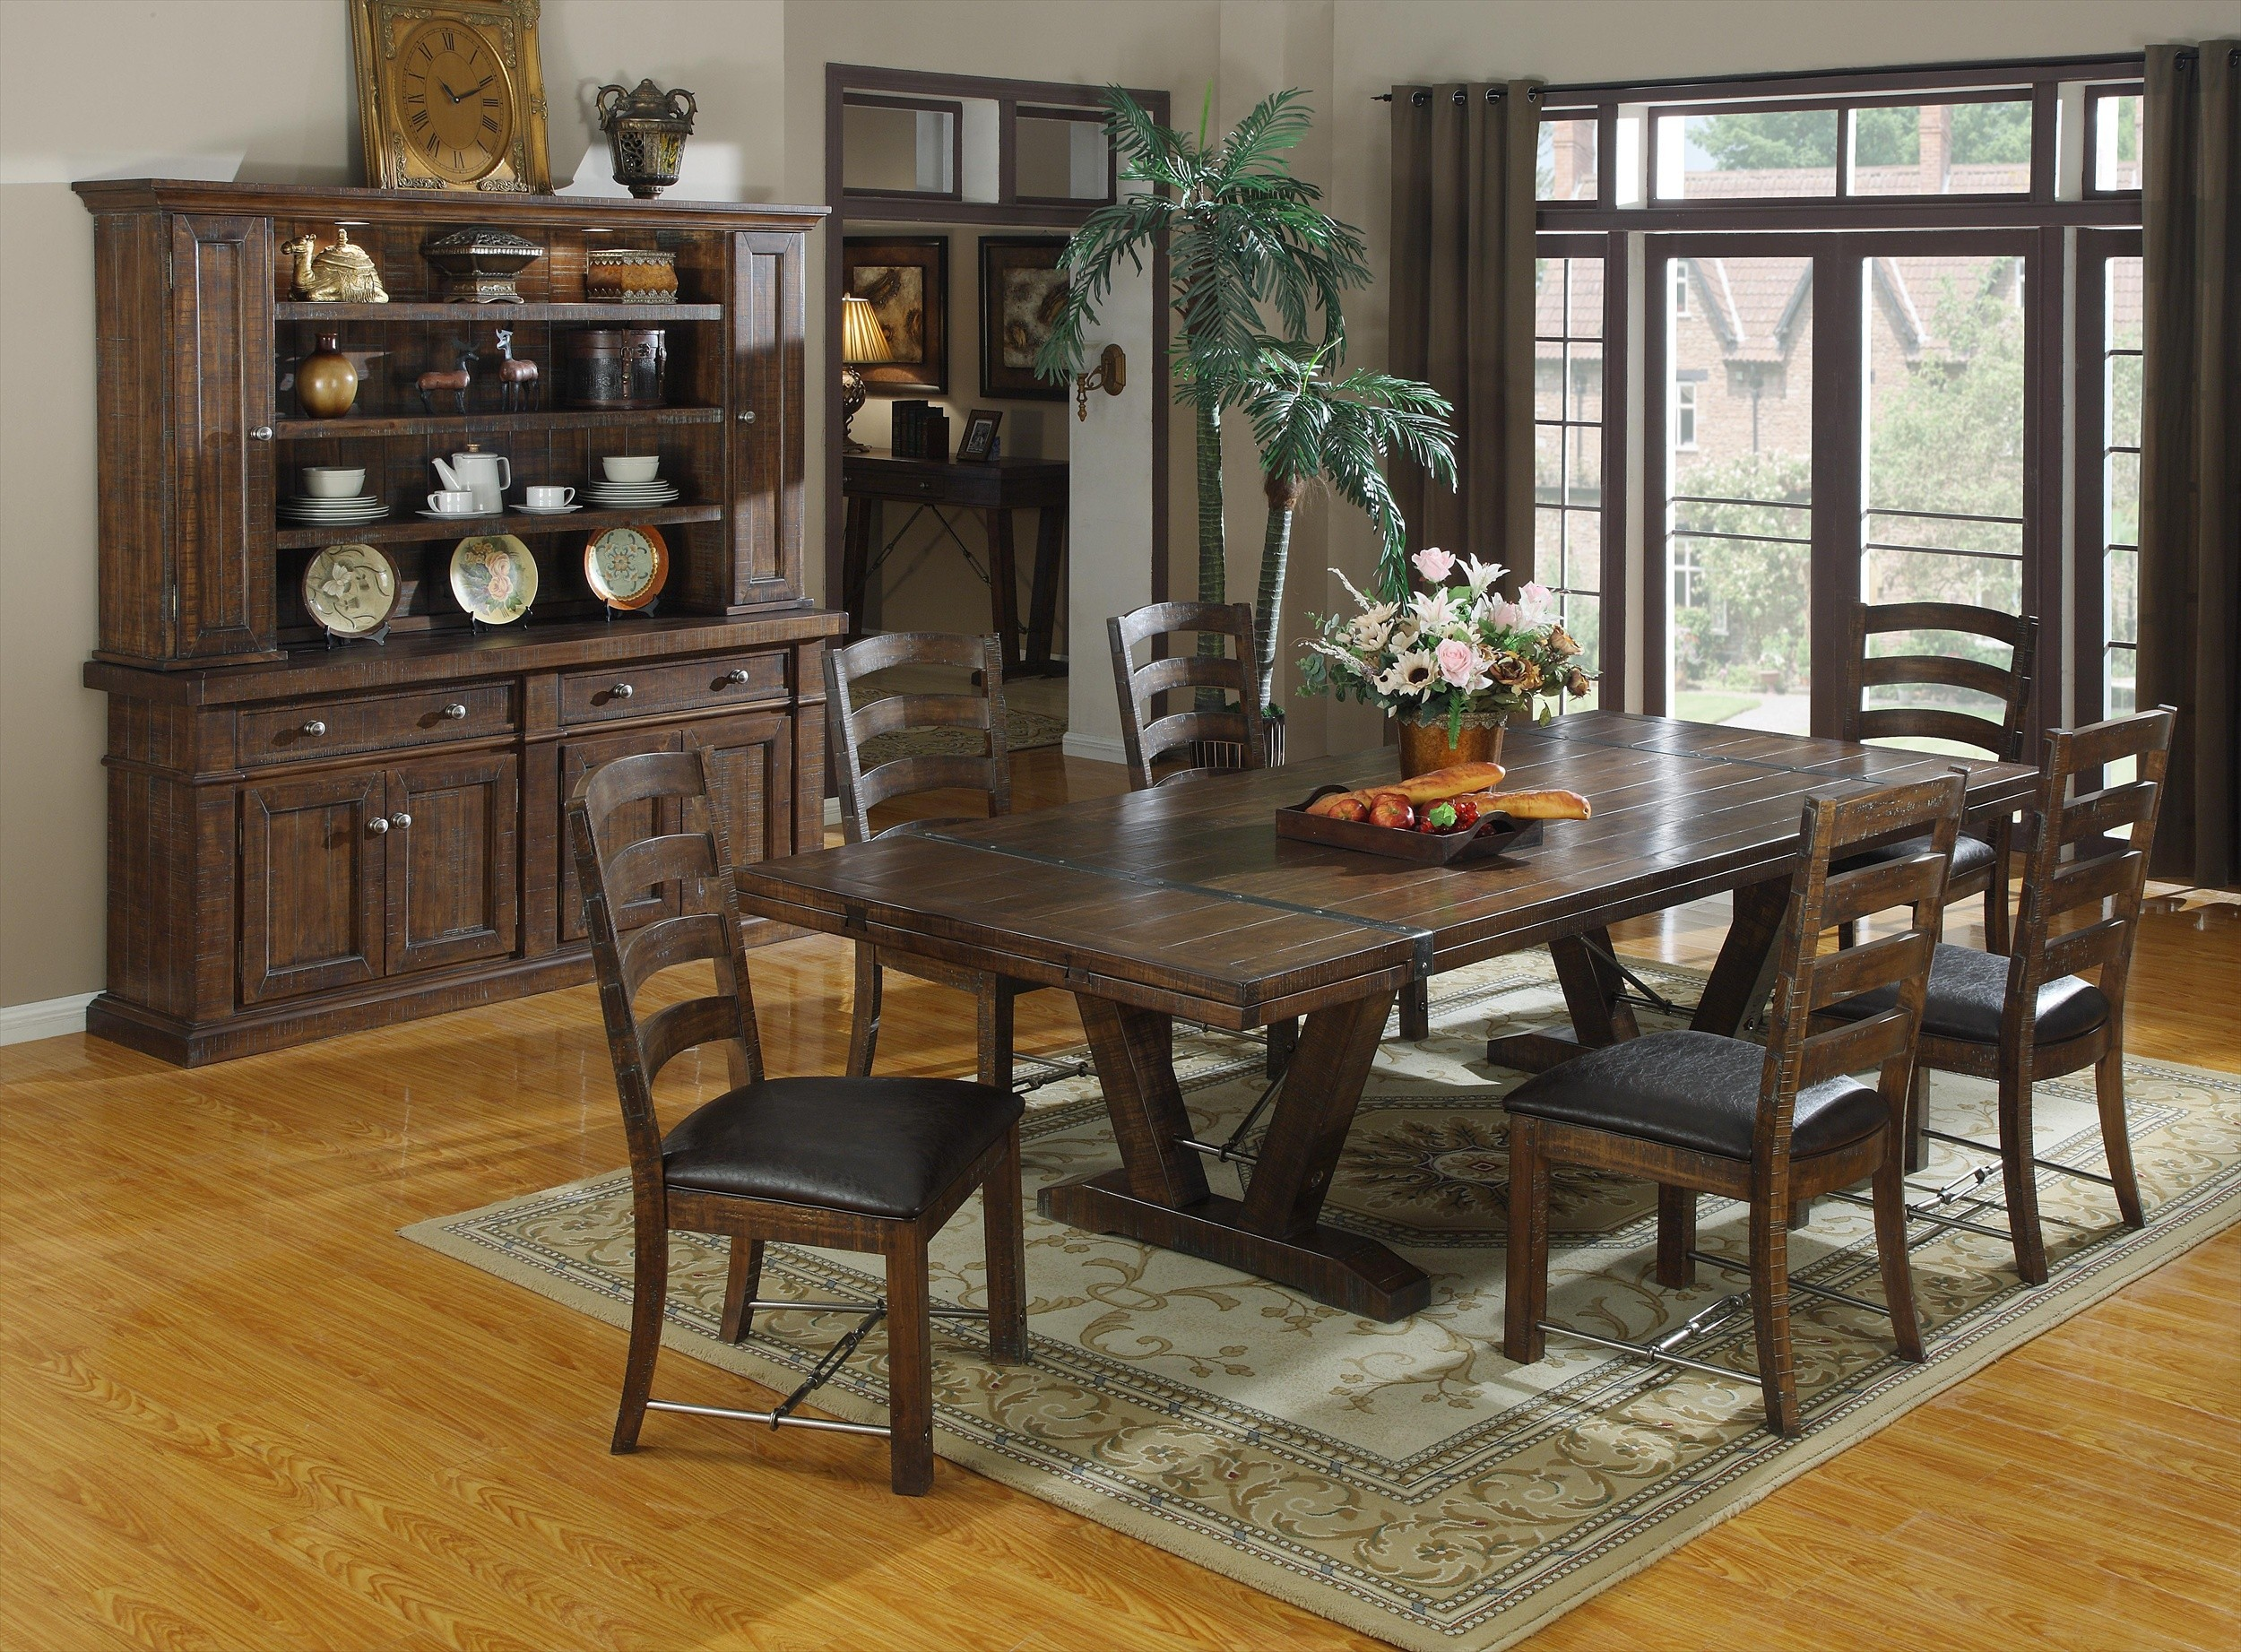 Best Formal Dining Room Sets For Home Design: Cute Formal Dining Room Sets  With Buffet